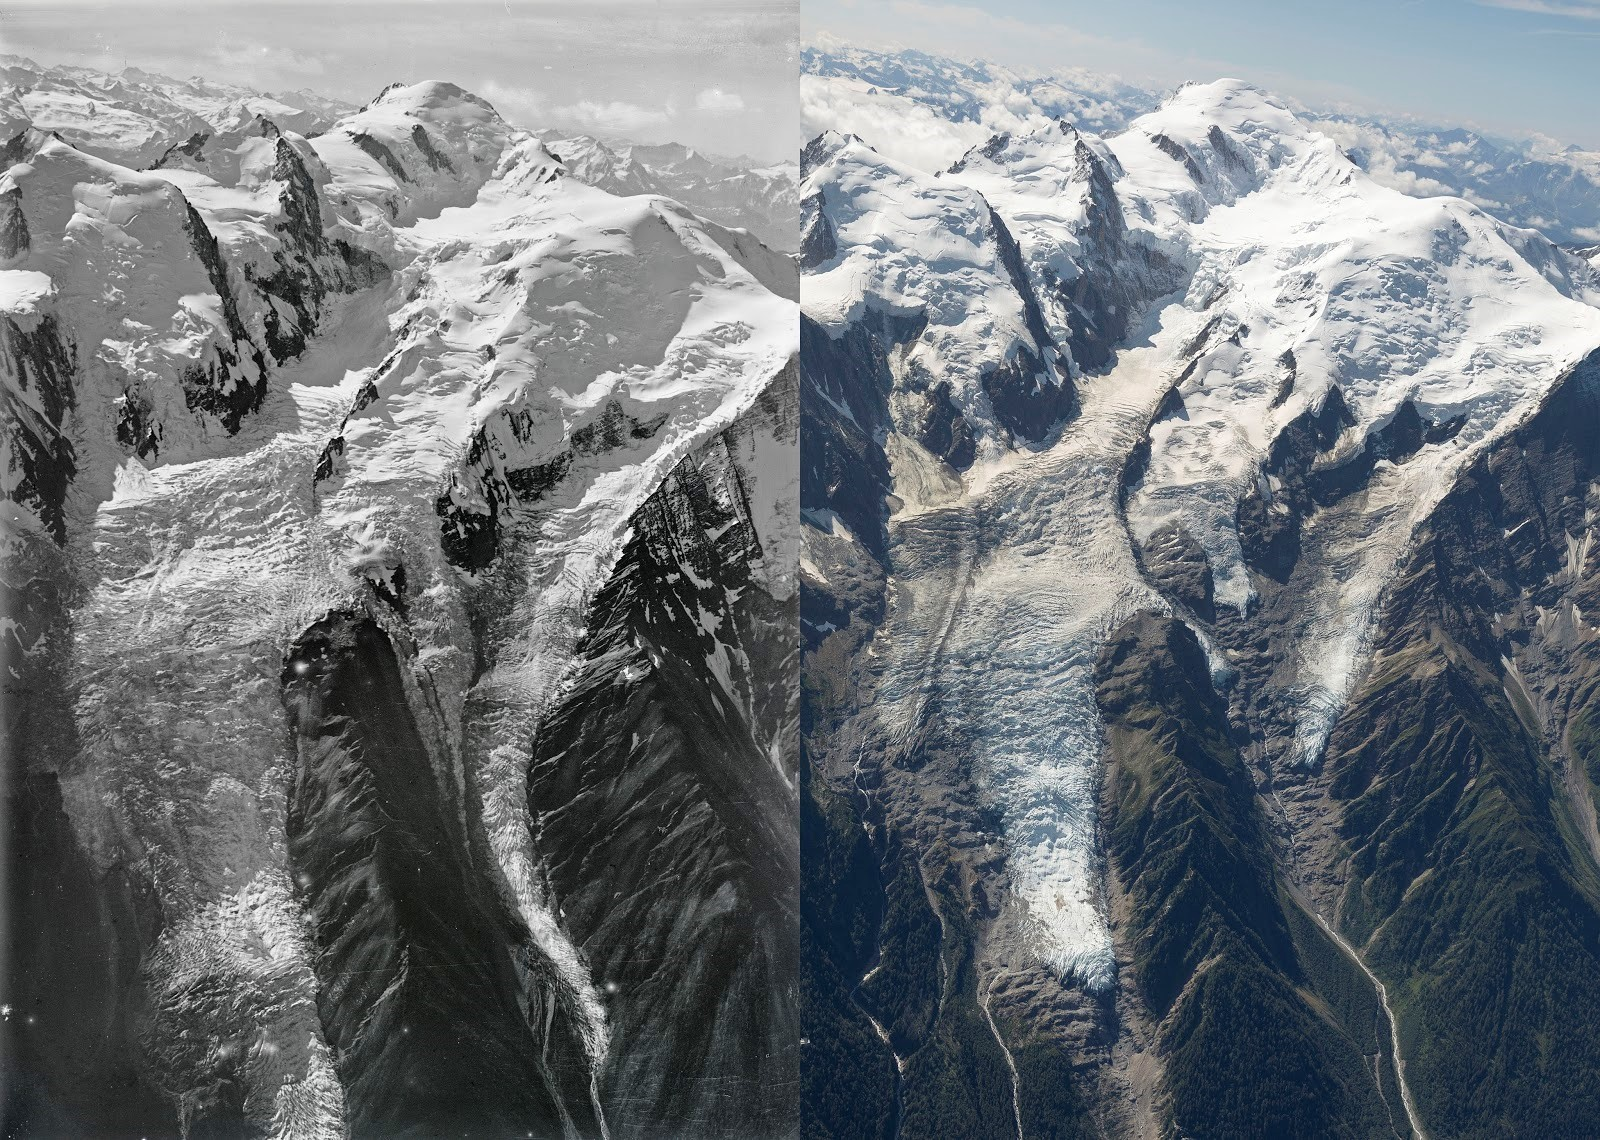 Alpine glaciers, such as Mont Blanc Bossons, are melting at what scientists say is an alarming rate.